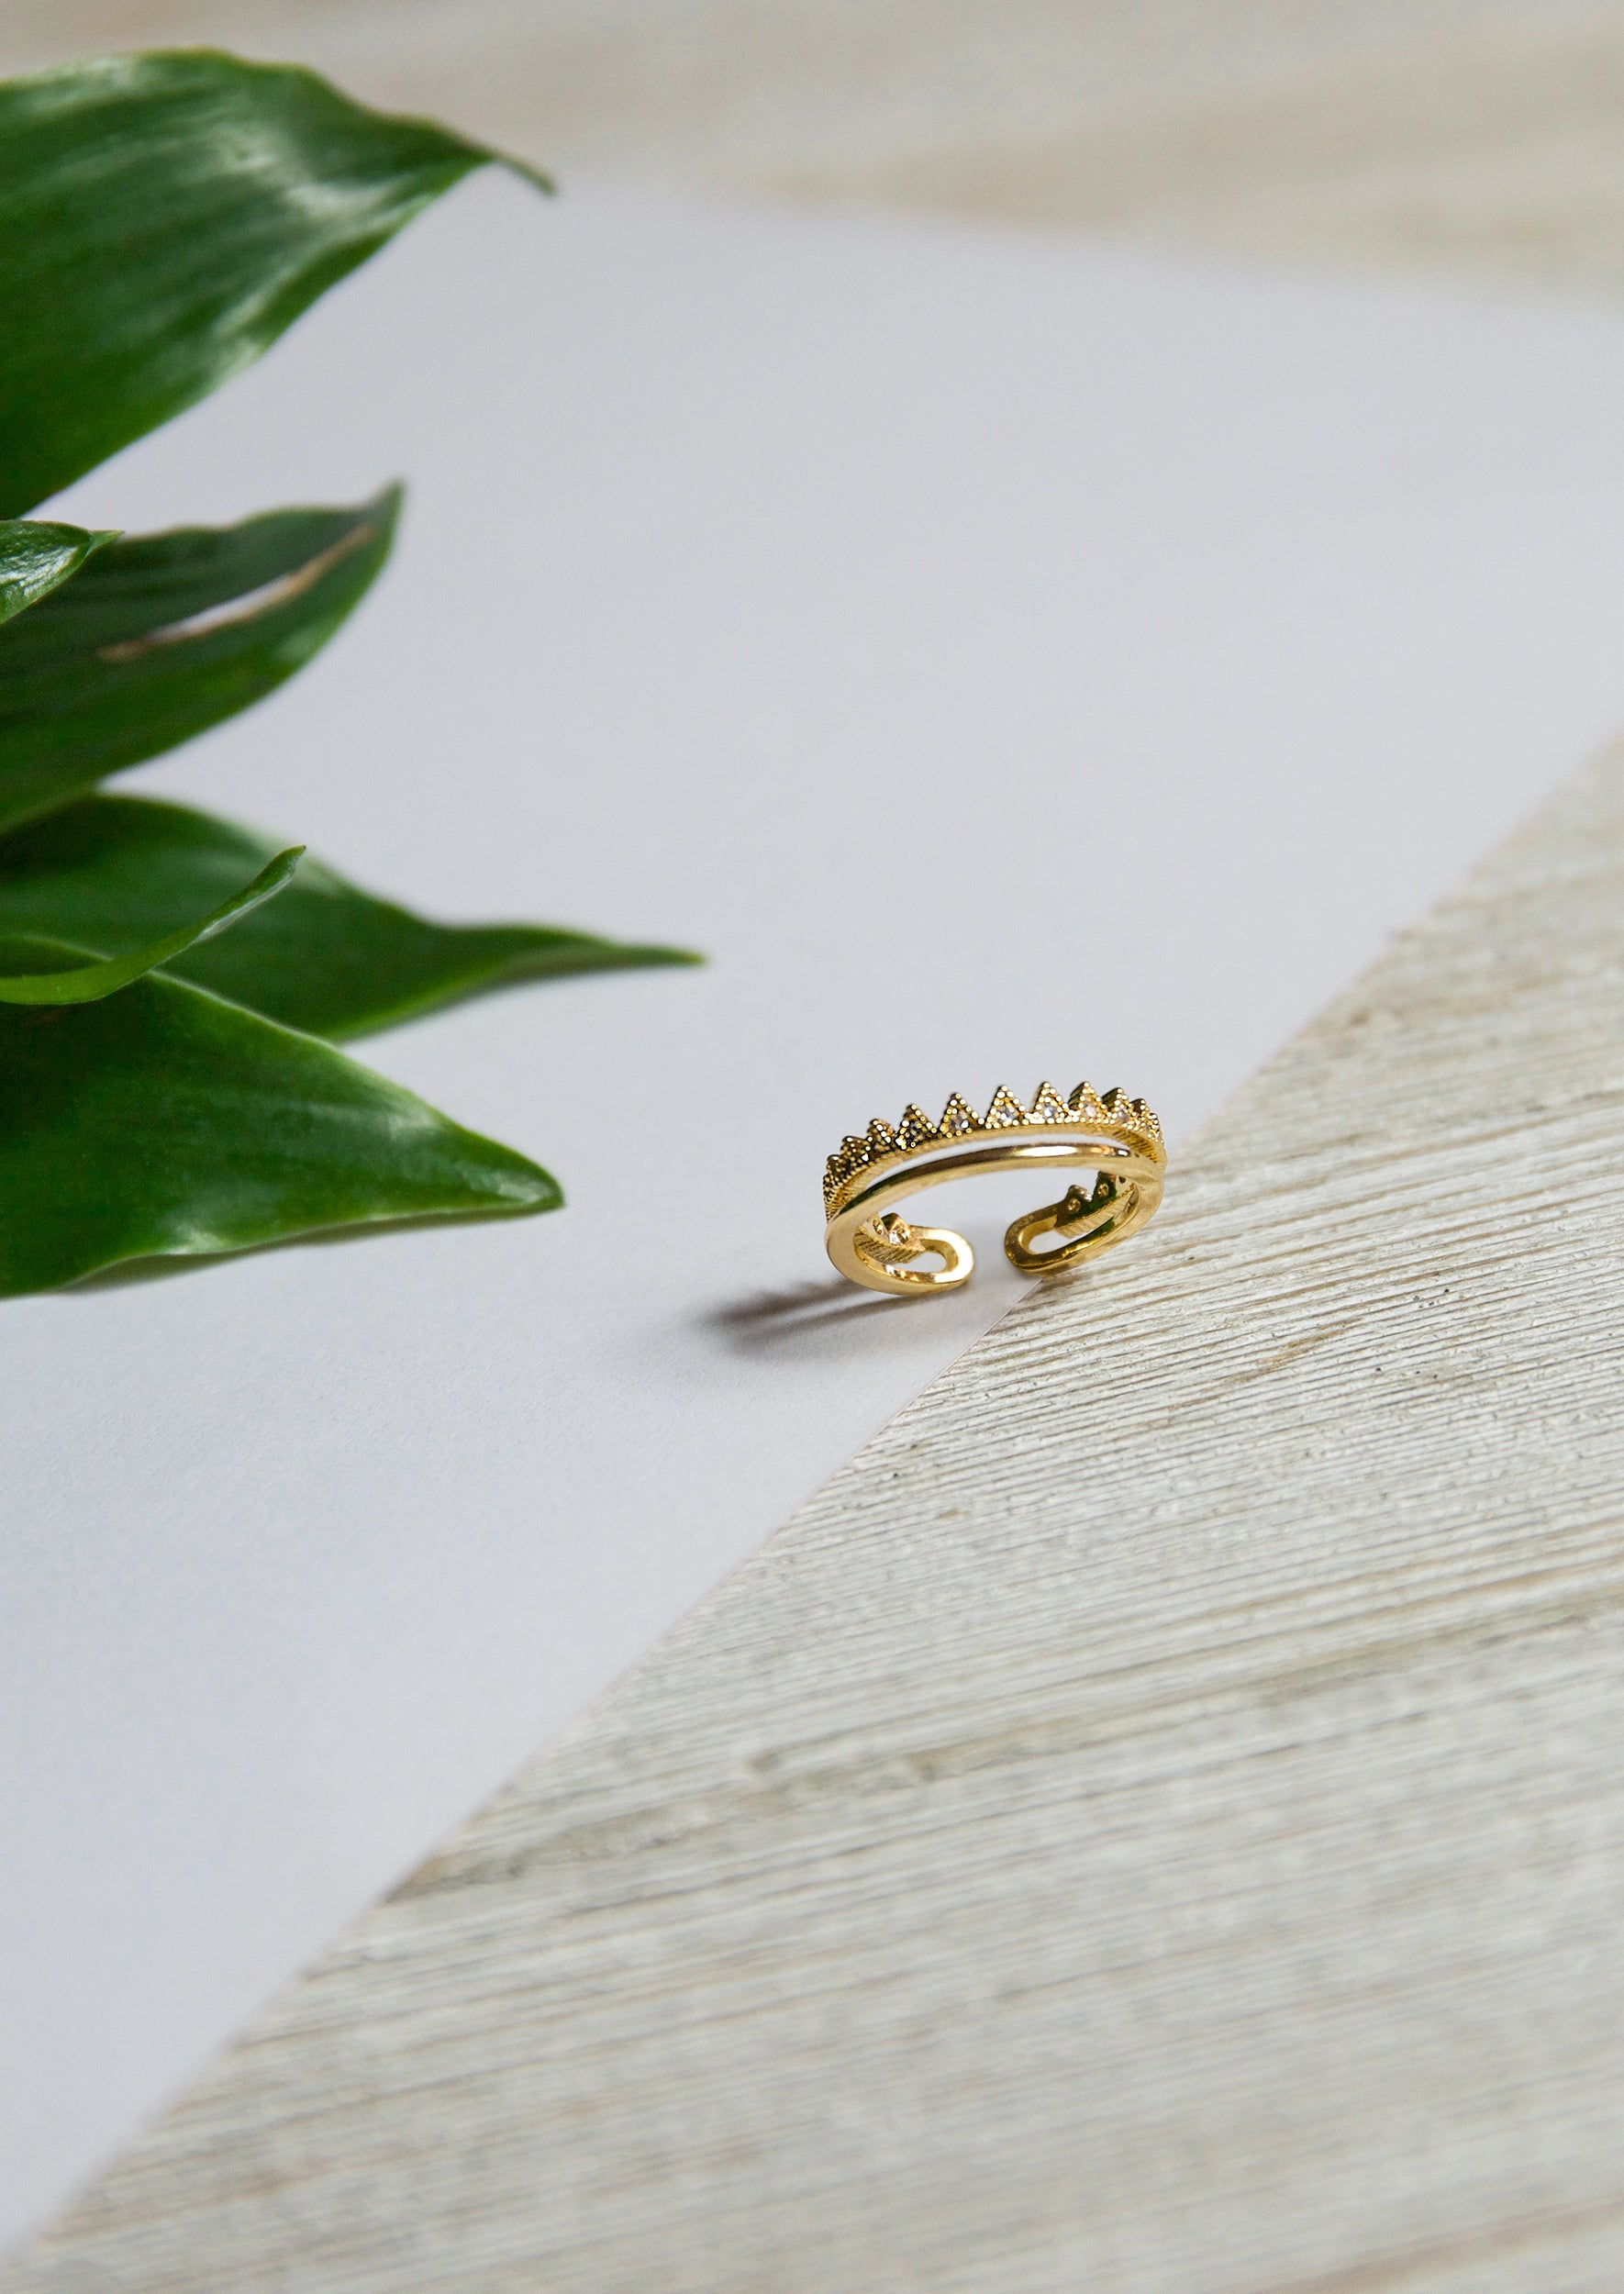 Royalty Ring - Jules Smith - 14K Gold Plated - Boho Jewelry